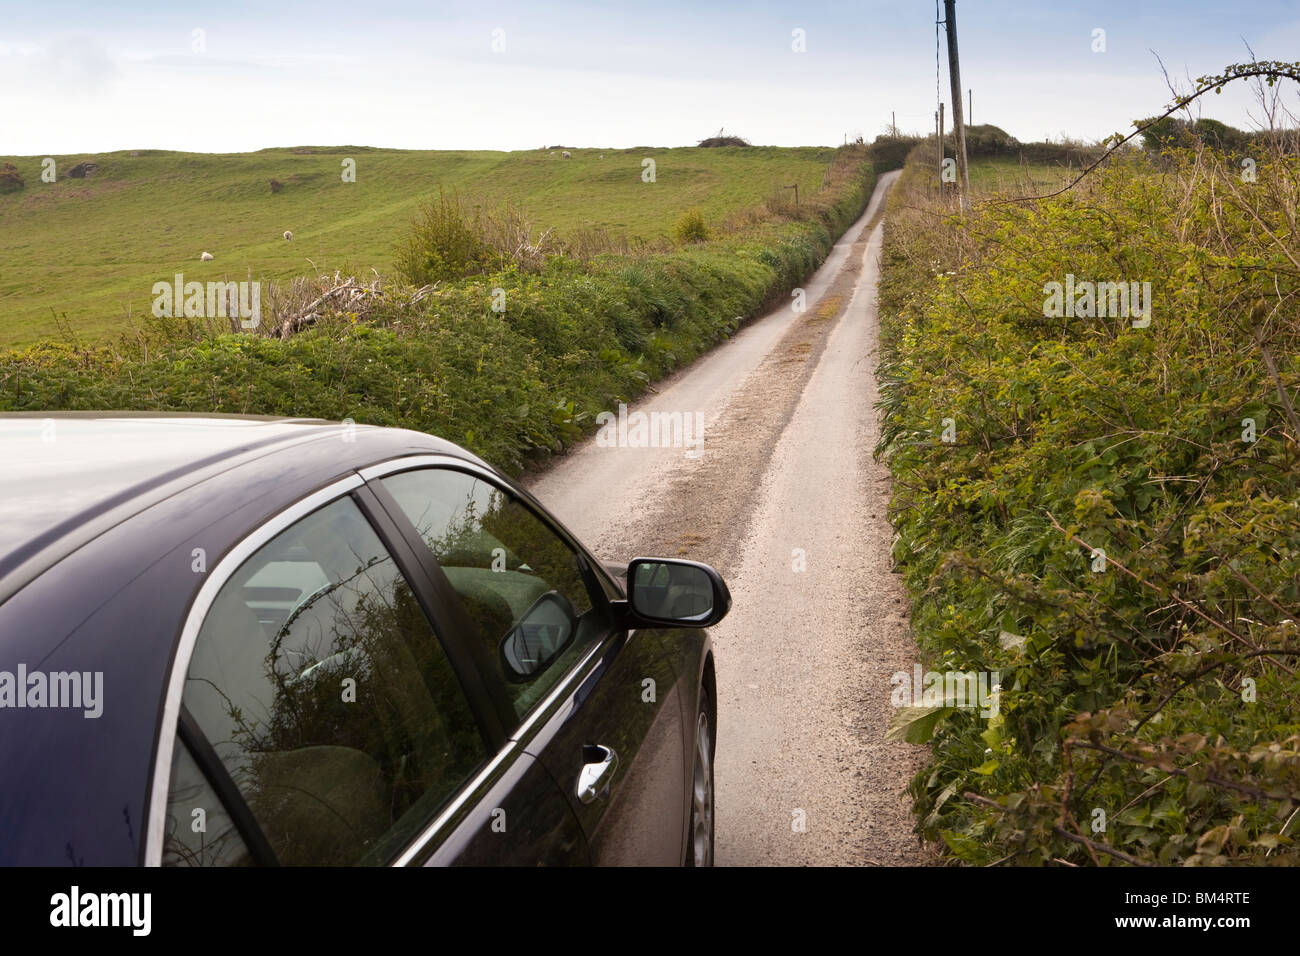 UK, England, Devon, Ilfracombe, Higher Hawcombe, car driving along narrow country lane - Stock Image